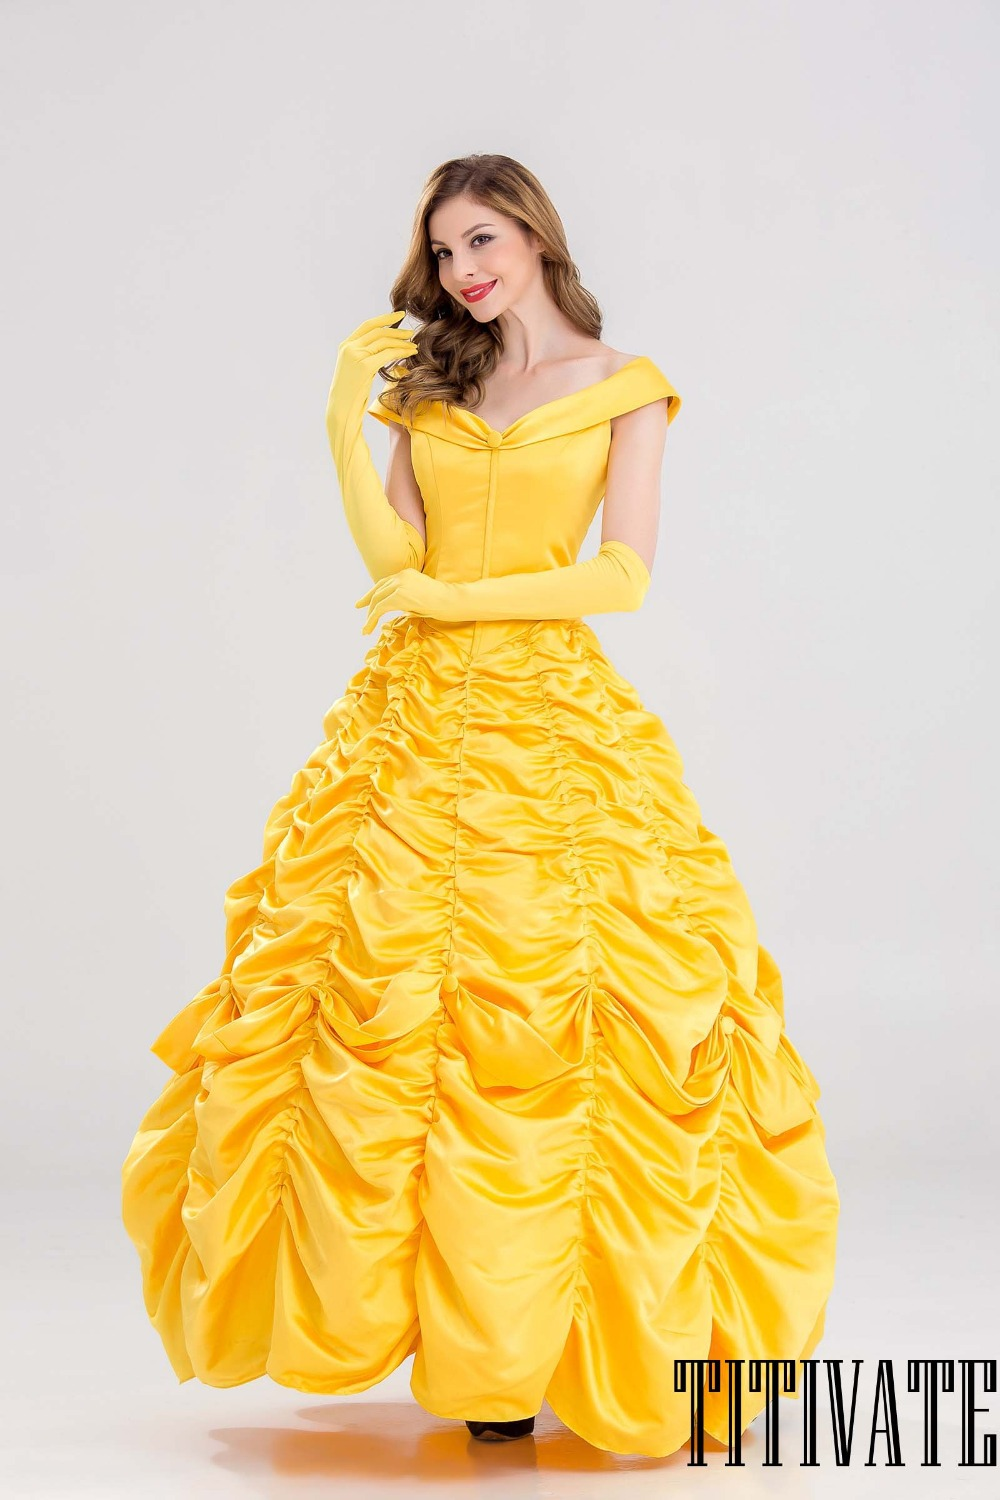 titivate belle princess halloween costume women cosplay beauty and